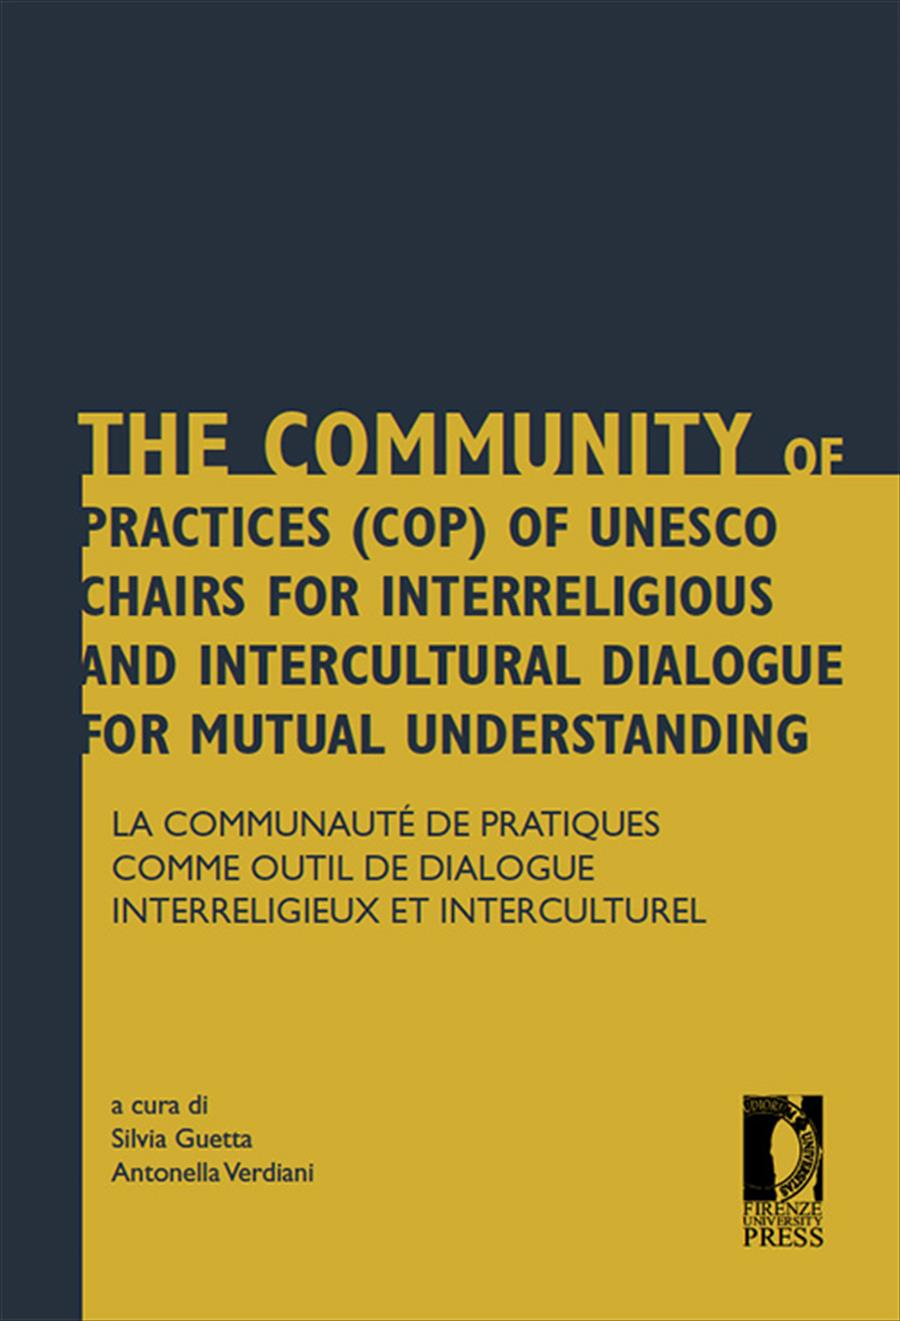 The Community of Practices (CoP) of UNESCO Chairs for Interreligious and Intercultural Dialogue for Mutual Understanding / La Communauté de pratiques comme outil de dialogue interreligieux et interculturel